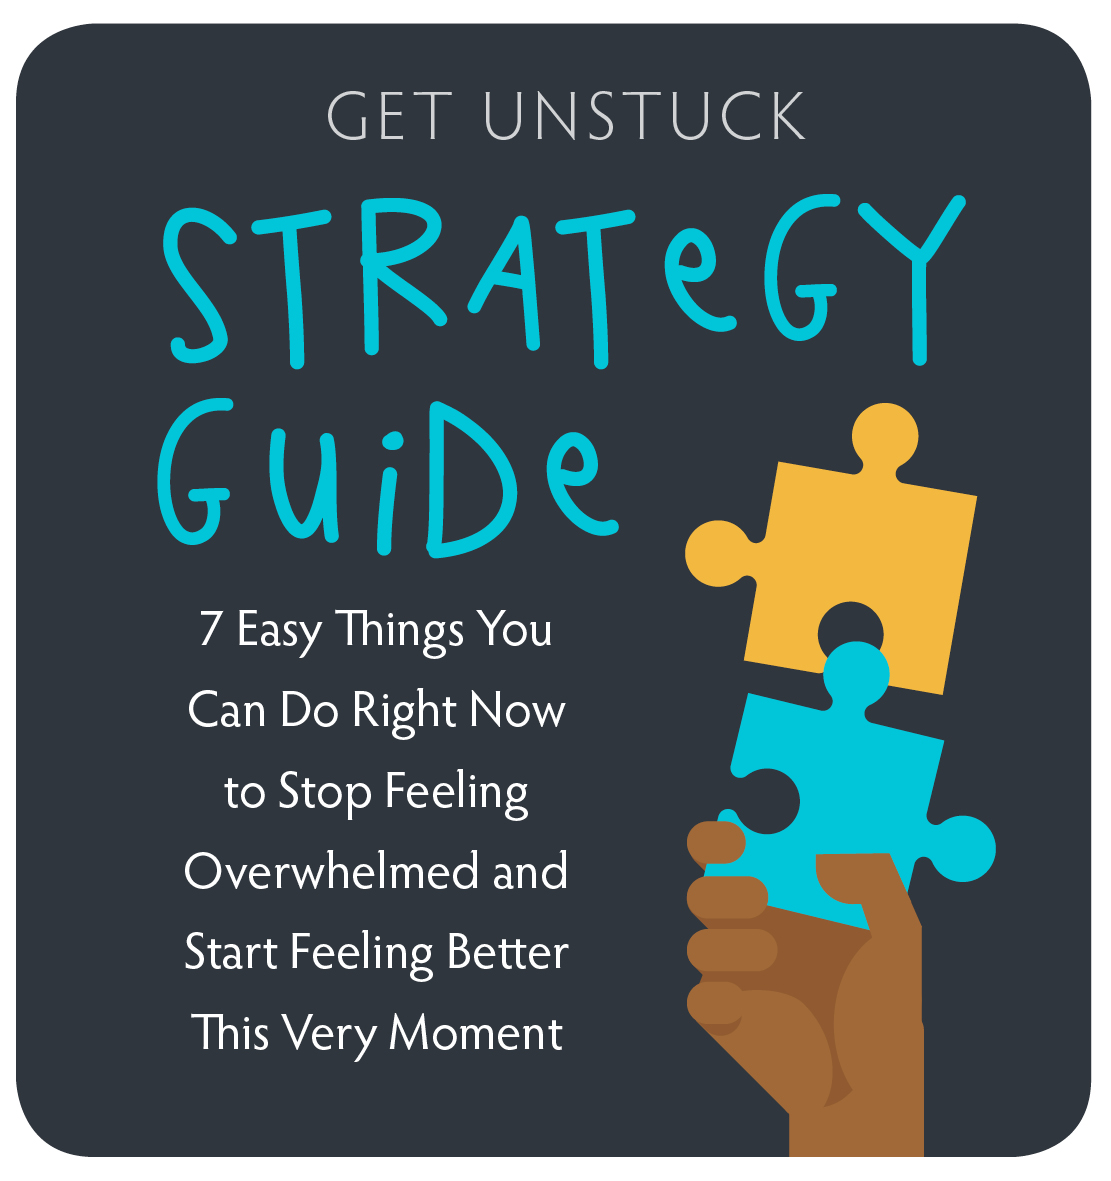 Get Unstuck Strategy Guide - DOWNLOAD